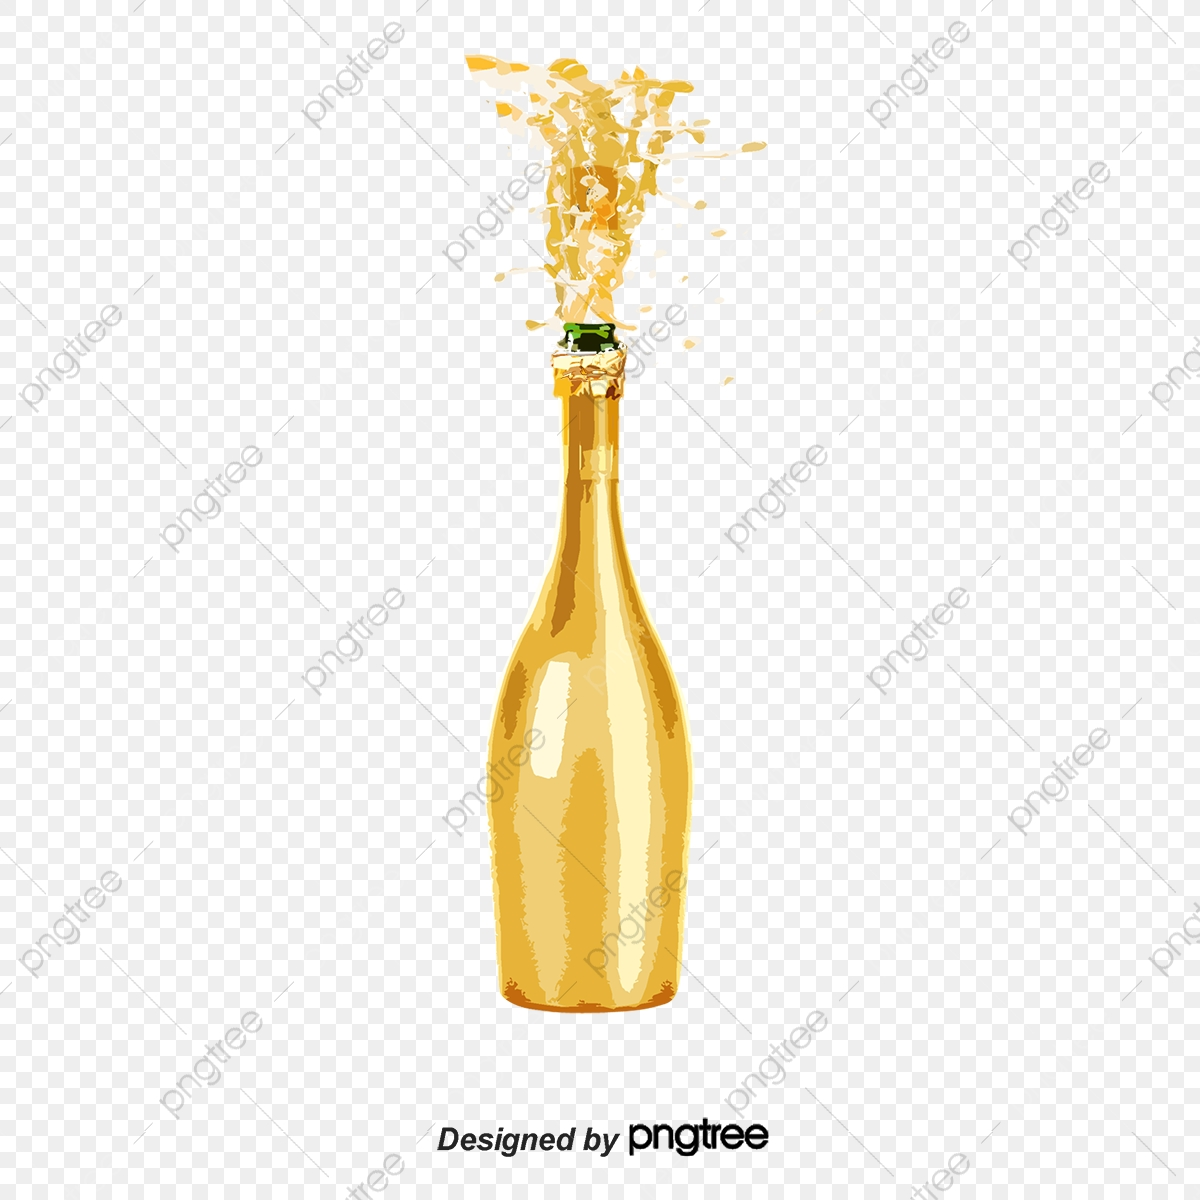 hight resolution of commercial use resource upgrade to premium plan and get license authorization upgradenow champagne splash splash clipart